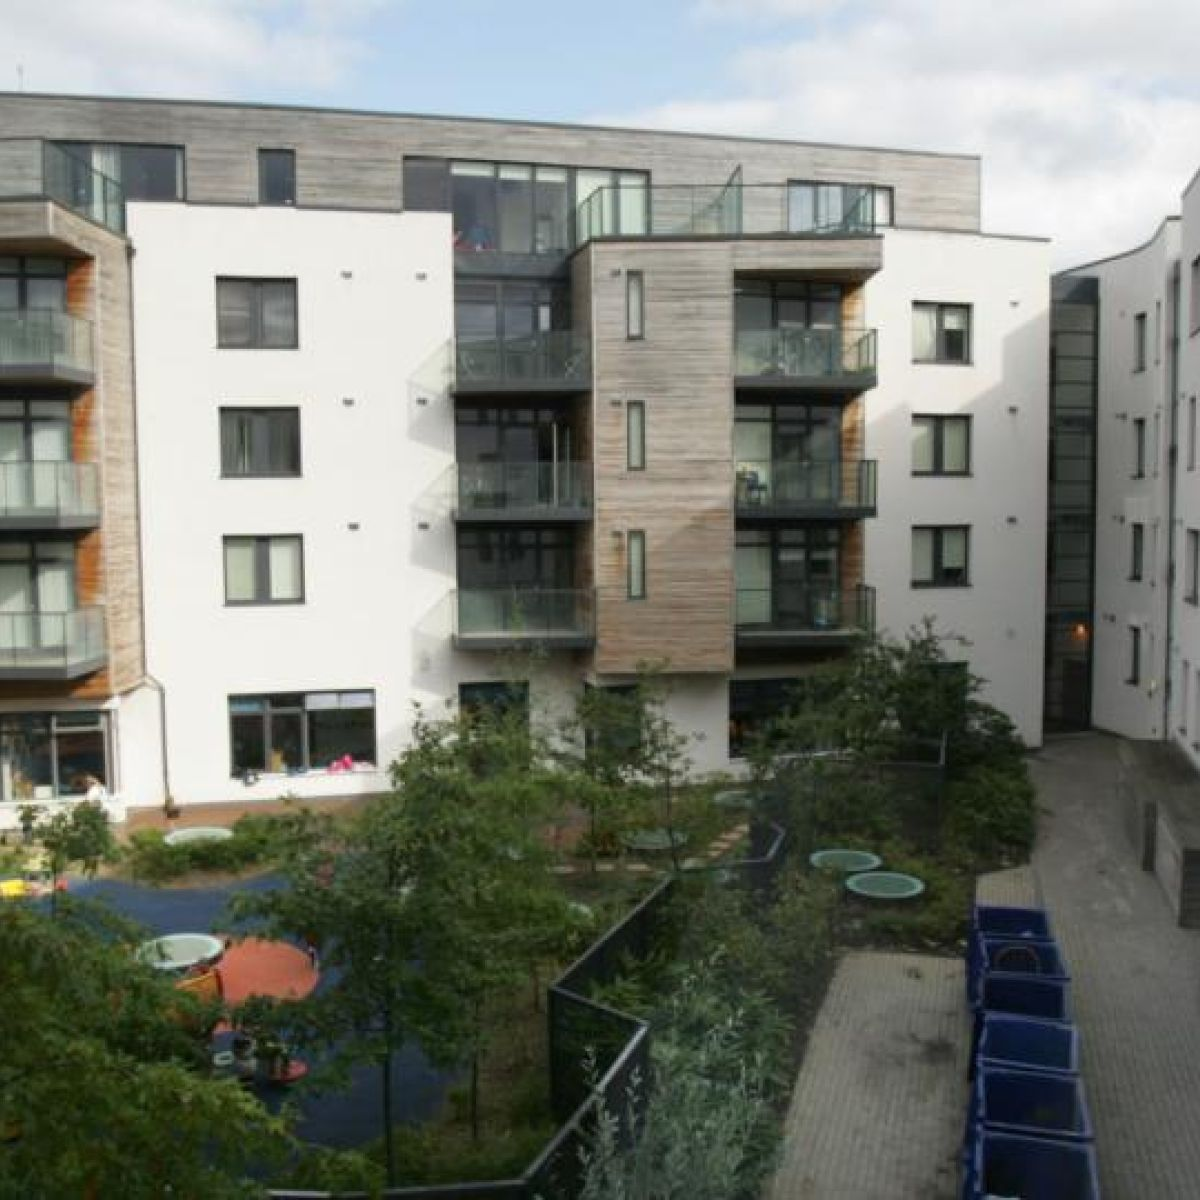 Regeneration of local authority estates 'cannot be left to market'